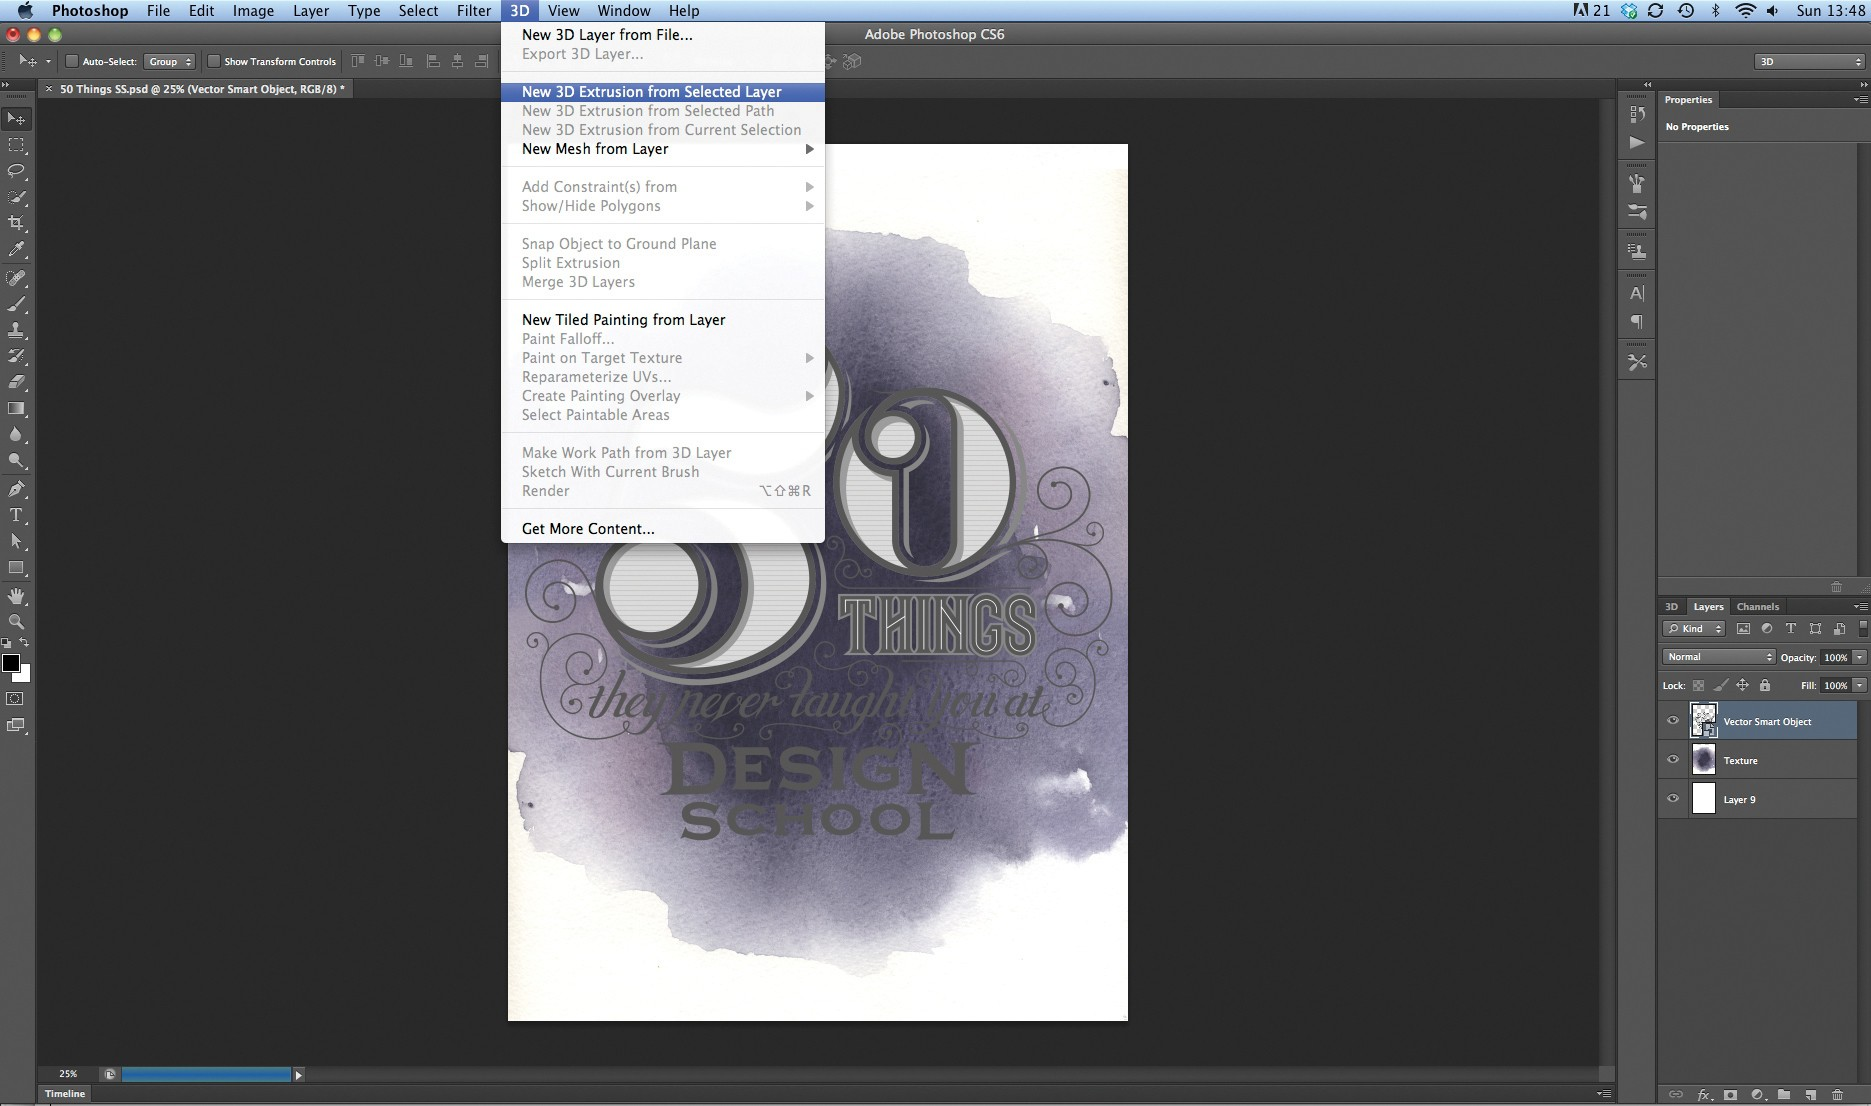 3d type tutorial create 3d type using photoshop cs6 digital arts baditri Choice Image